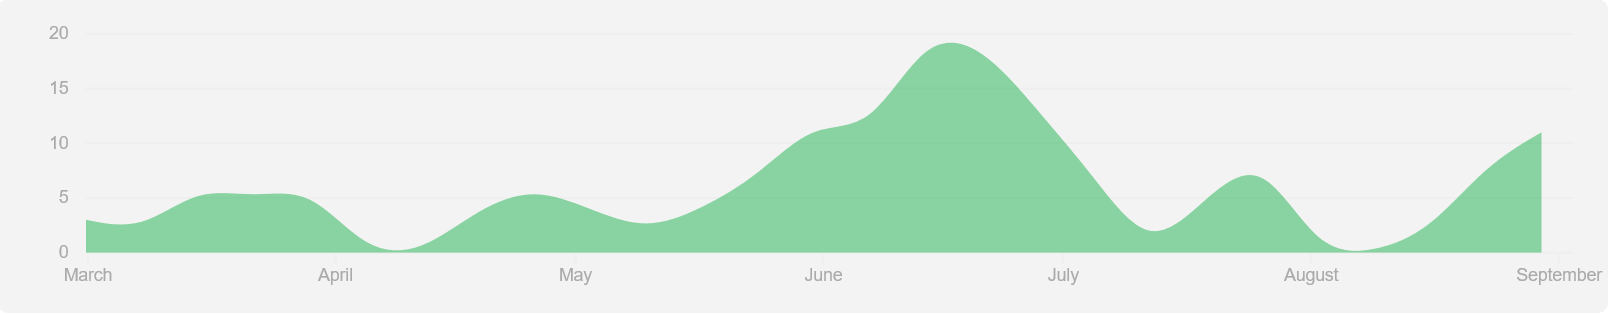 Commit graph for DayTrip from March to September